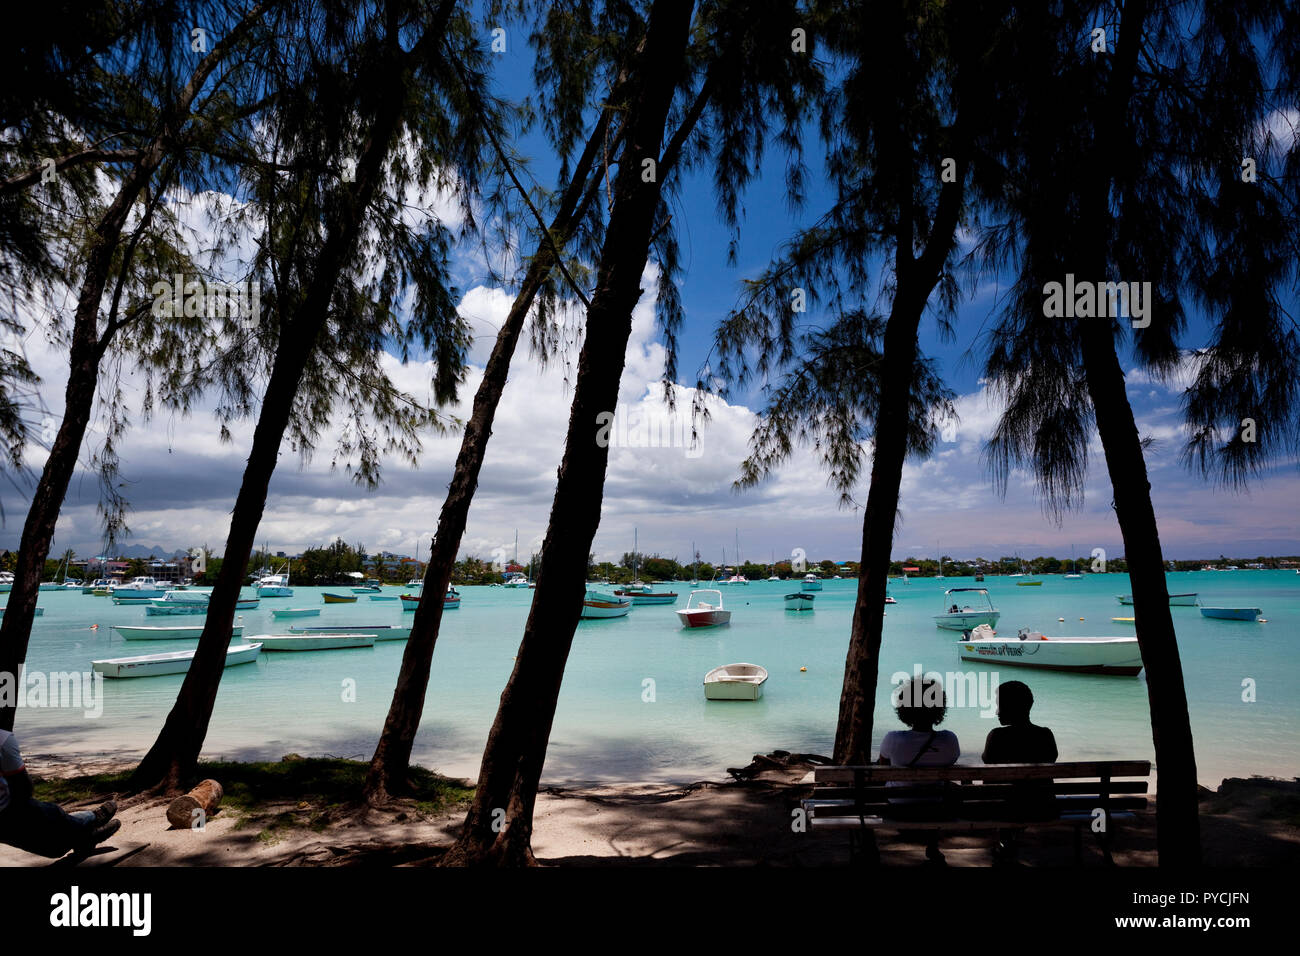 A view towards the harbour at Grand Baie on the north coast of Mauritius. - Stock Image